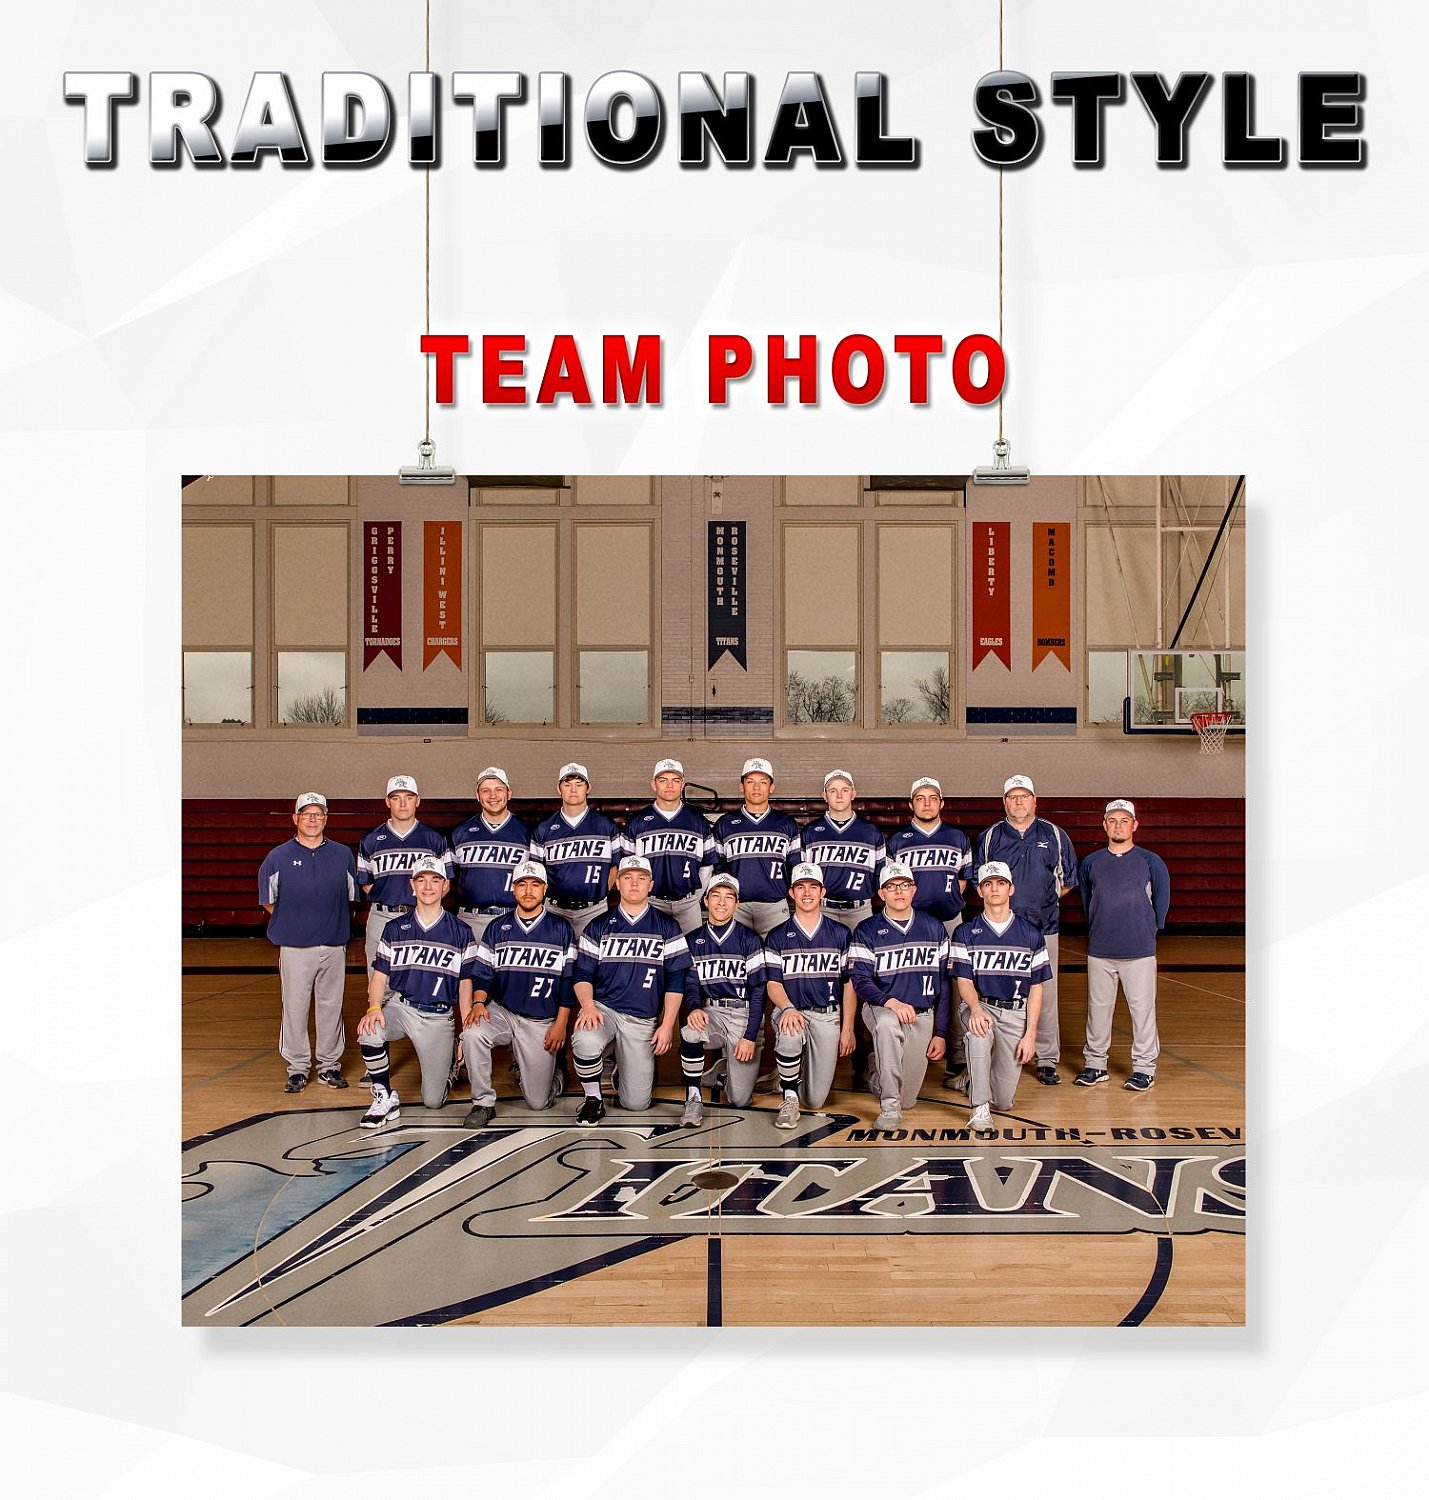 TRADITIONAL STYLE TEAM PHOTO